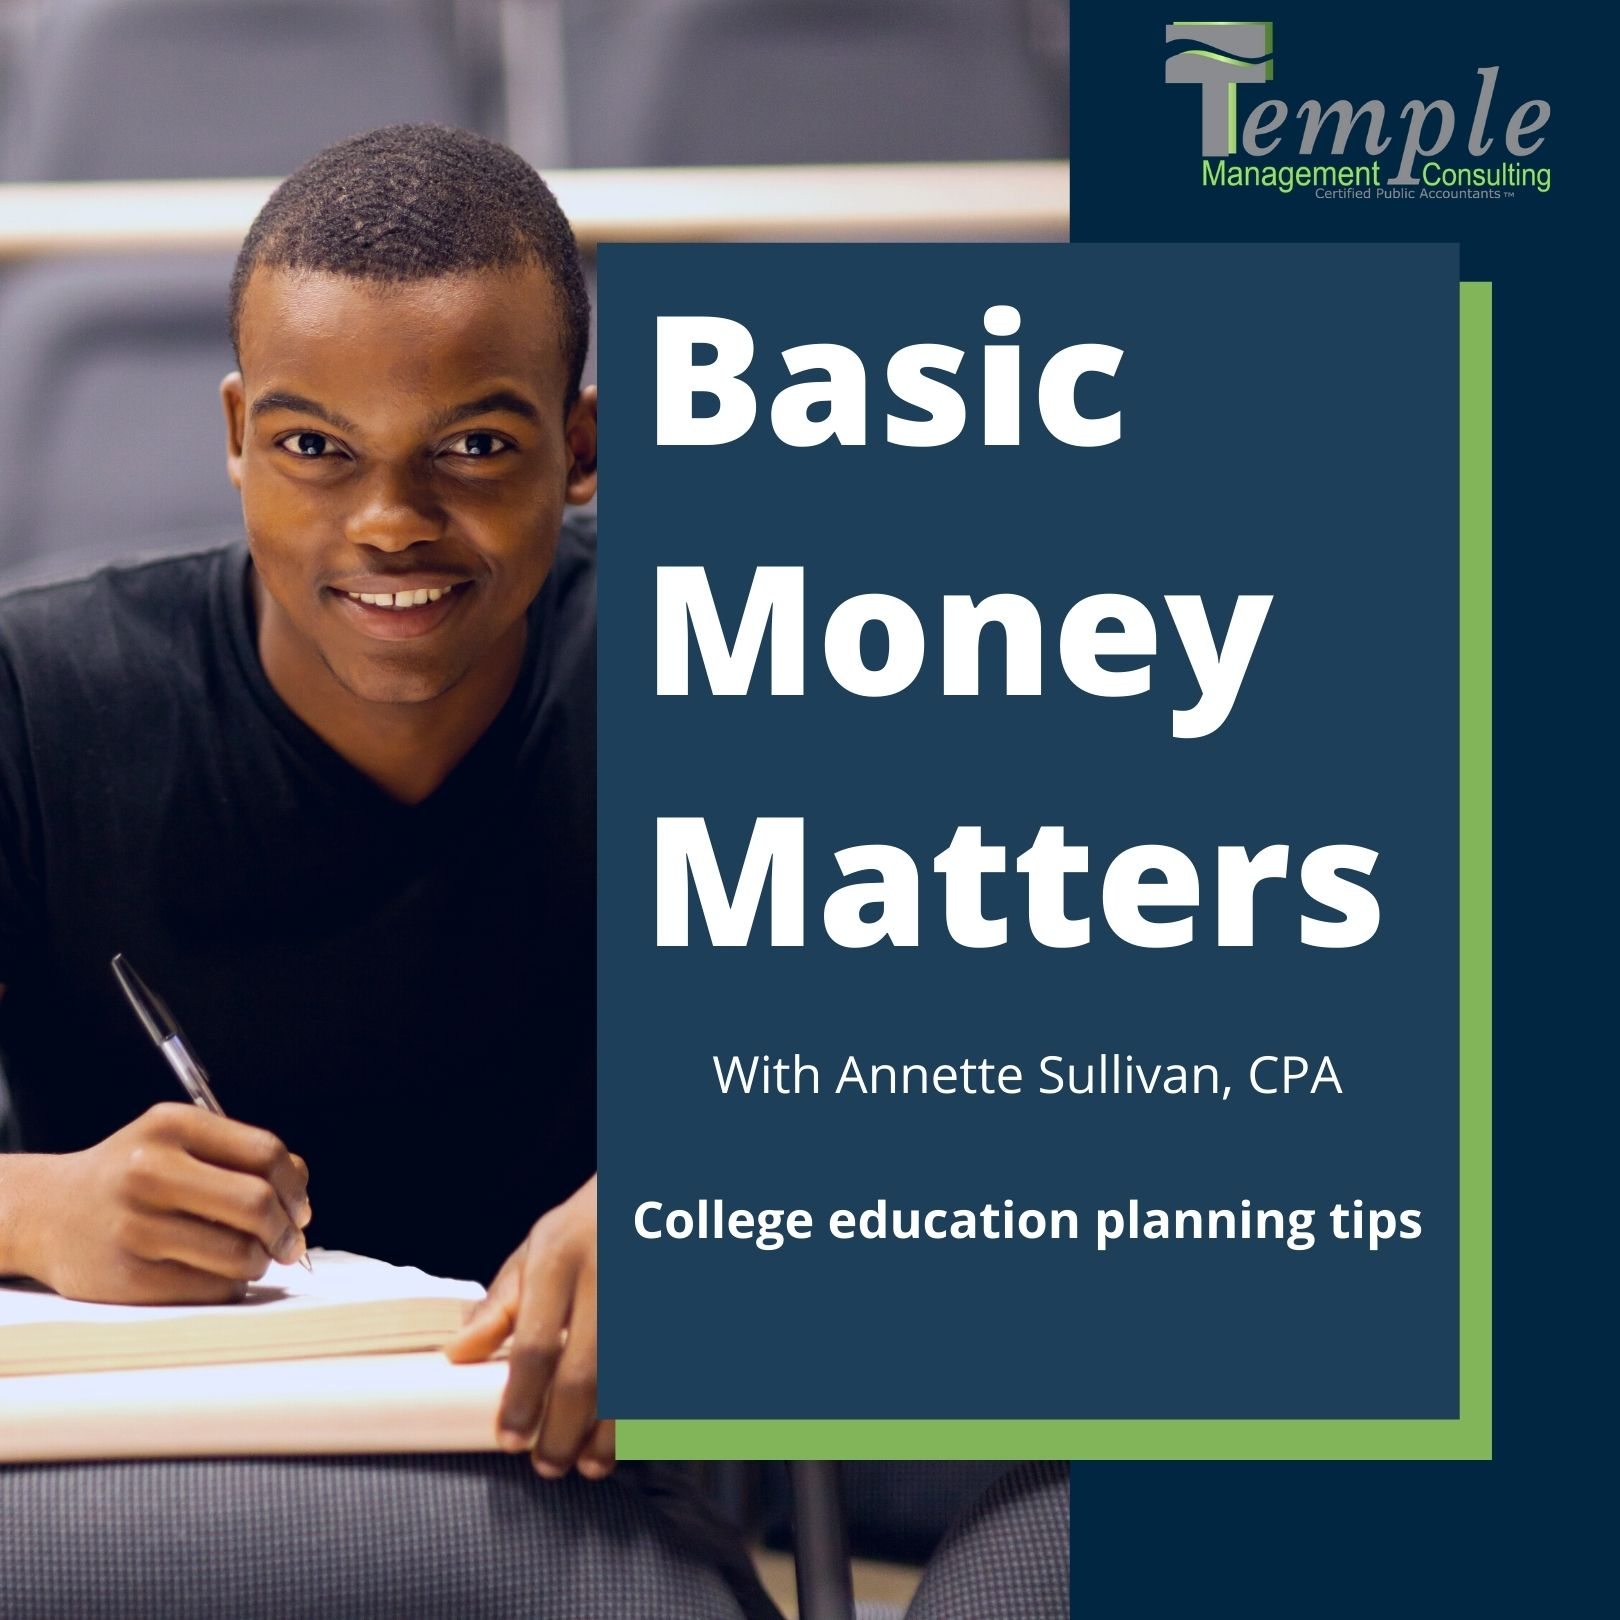 College education planning tips